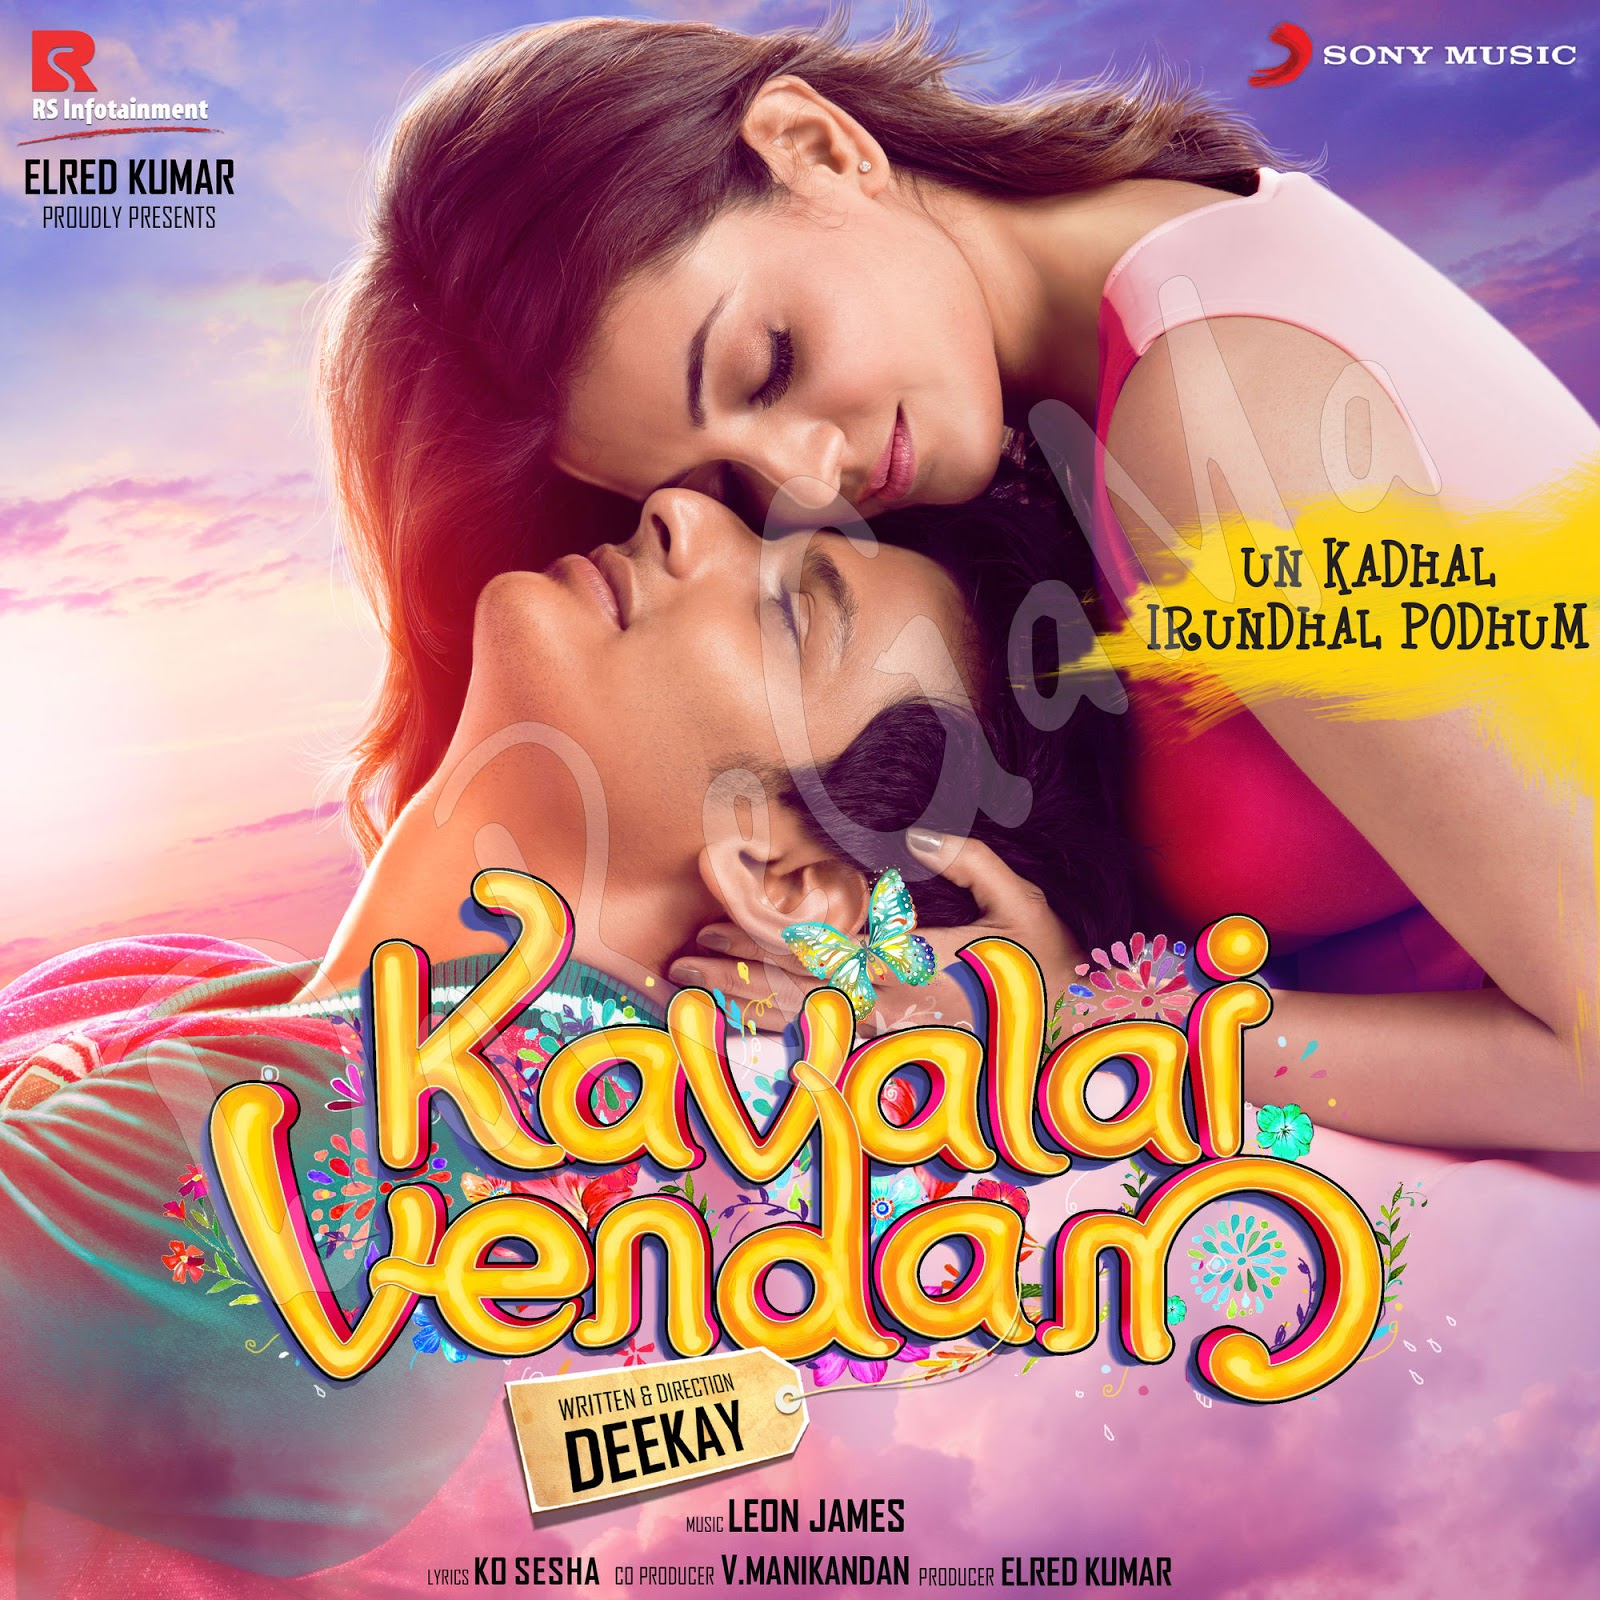 Kavalai Vendam (2016) Tamil Full Movie CD Front Cover Poster wallpaper HD